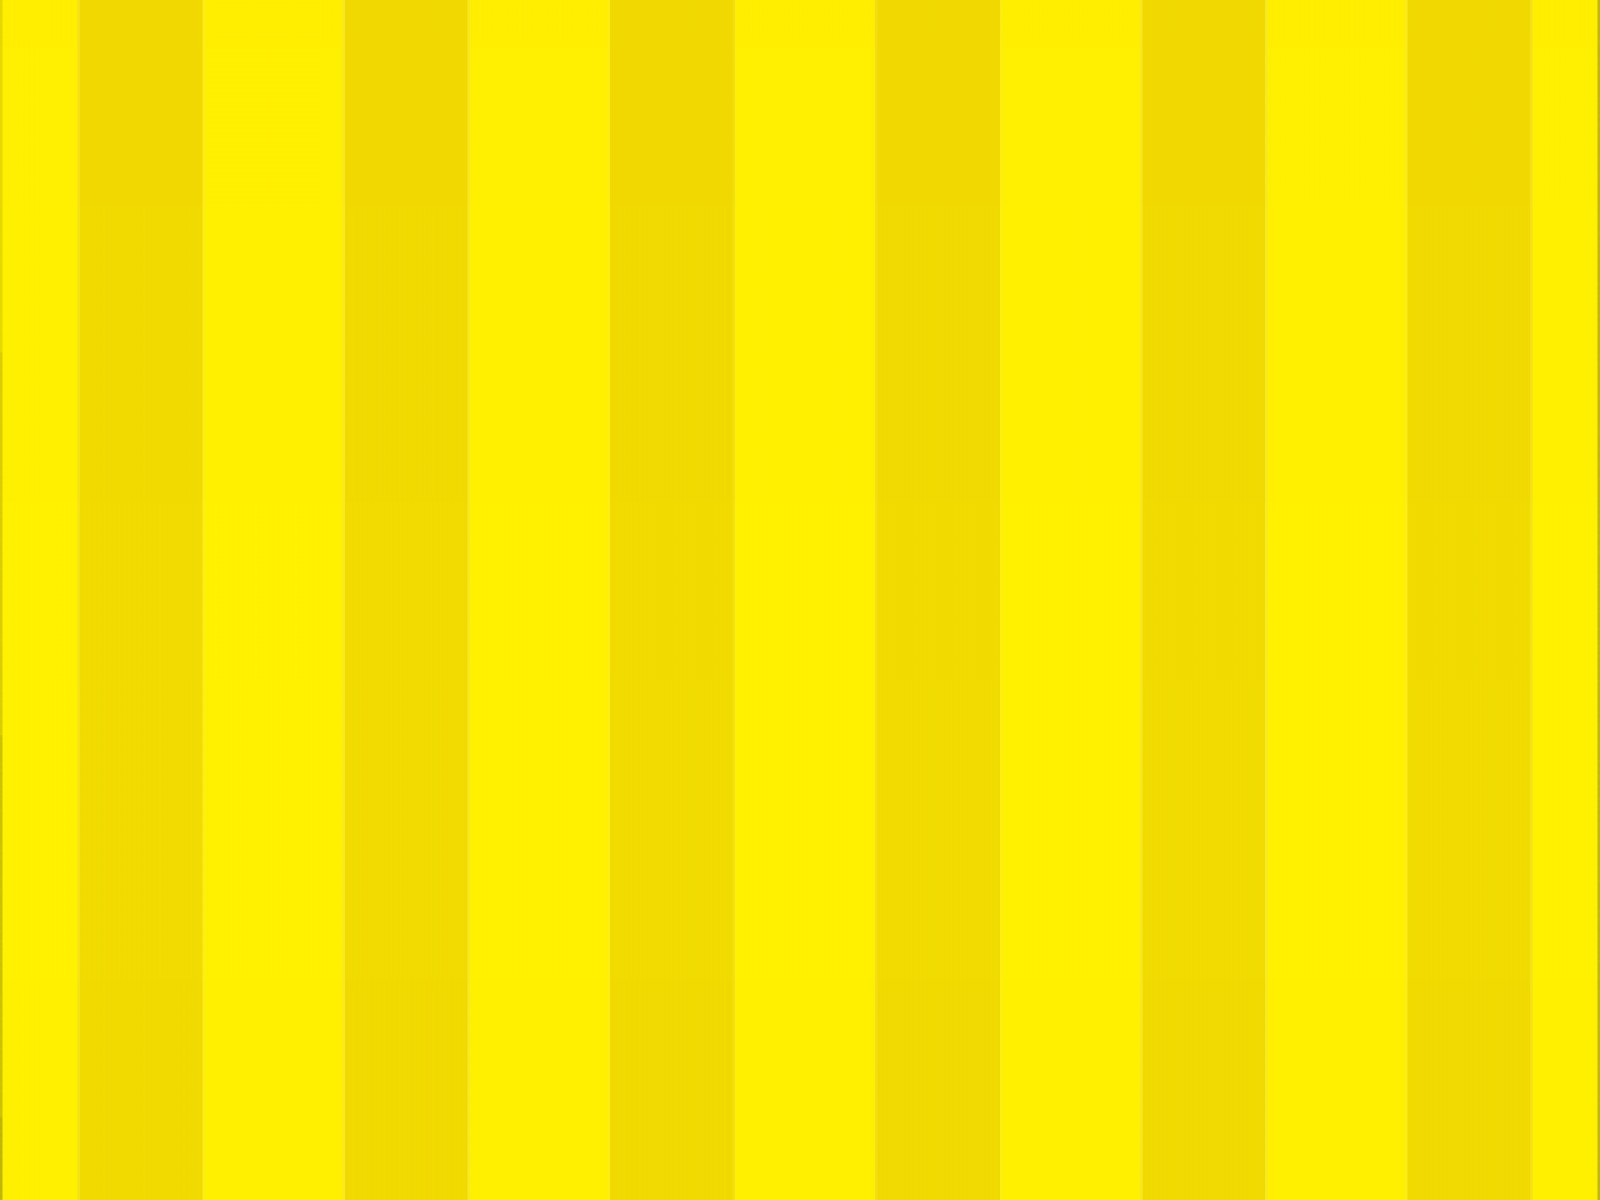 ... Yellow Background ...